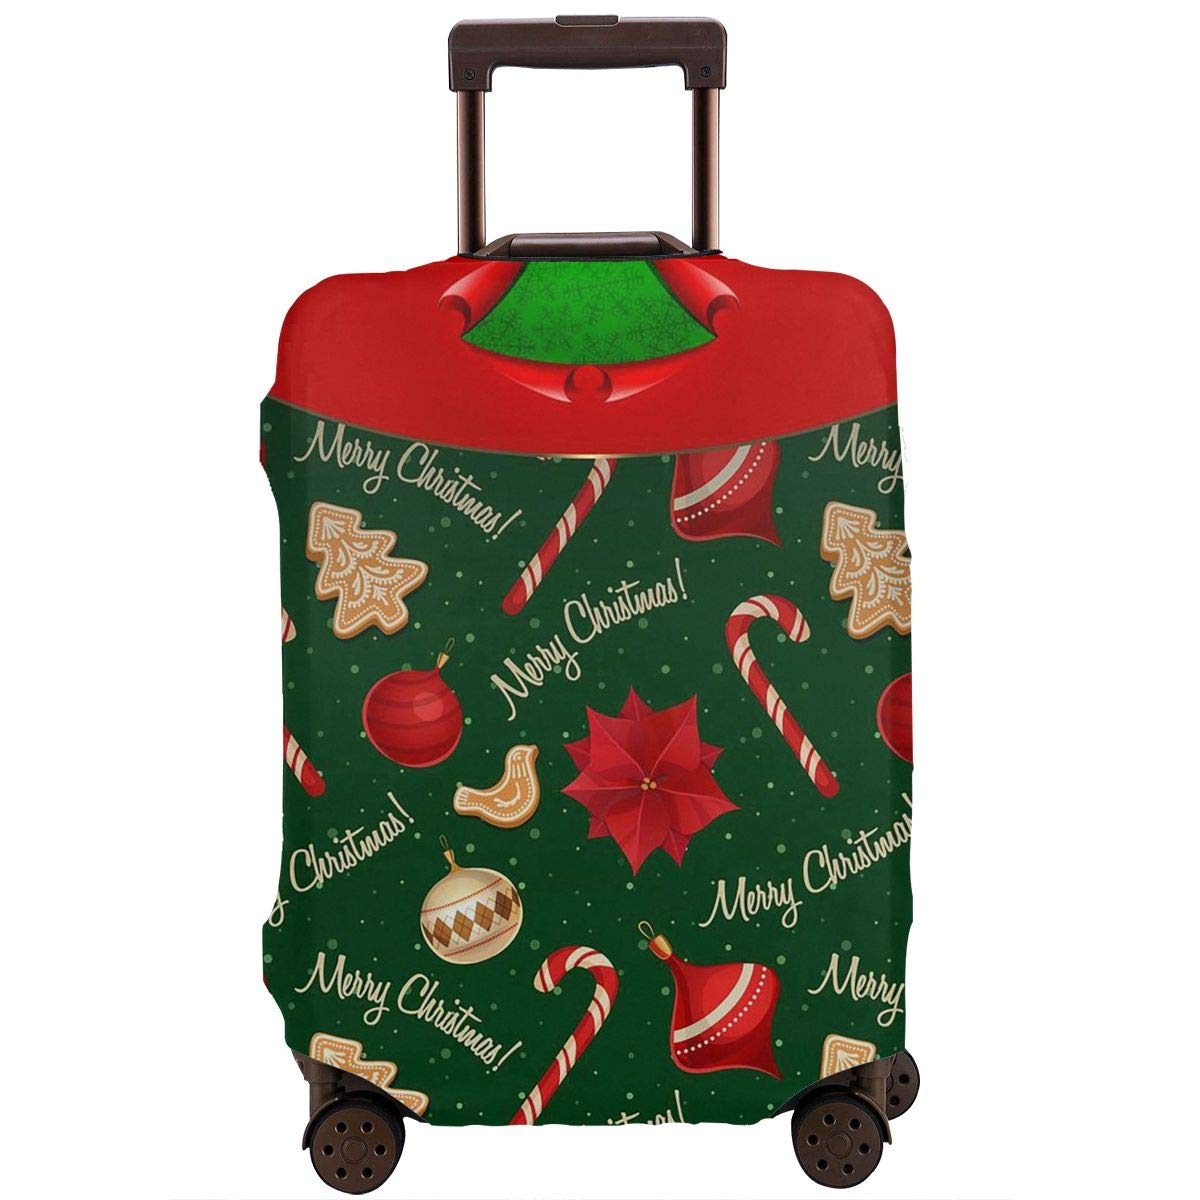 Tlkkkd_N Merry Christmas Travel Luggage Cover Anti-Scratch Baggage Suitcase Protector Cover Fits 18-32 Inch